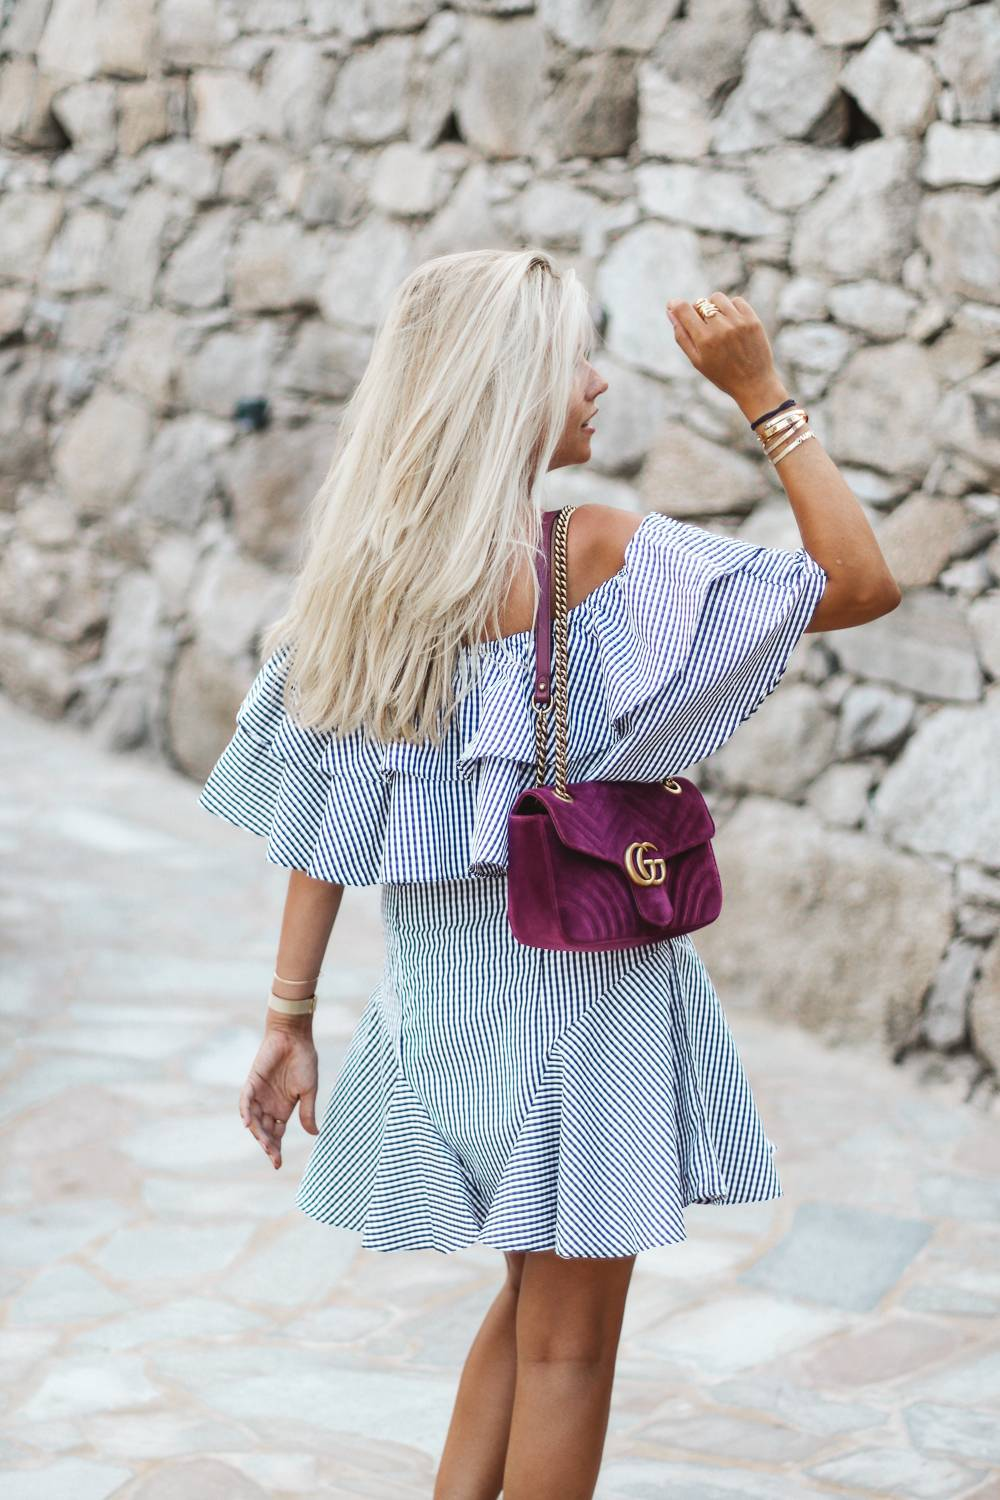 Robe off shoulder / blog mode